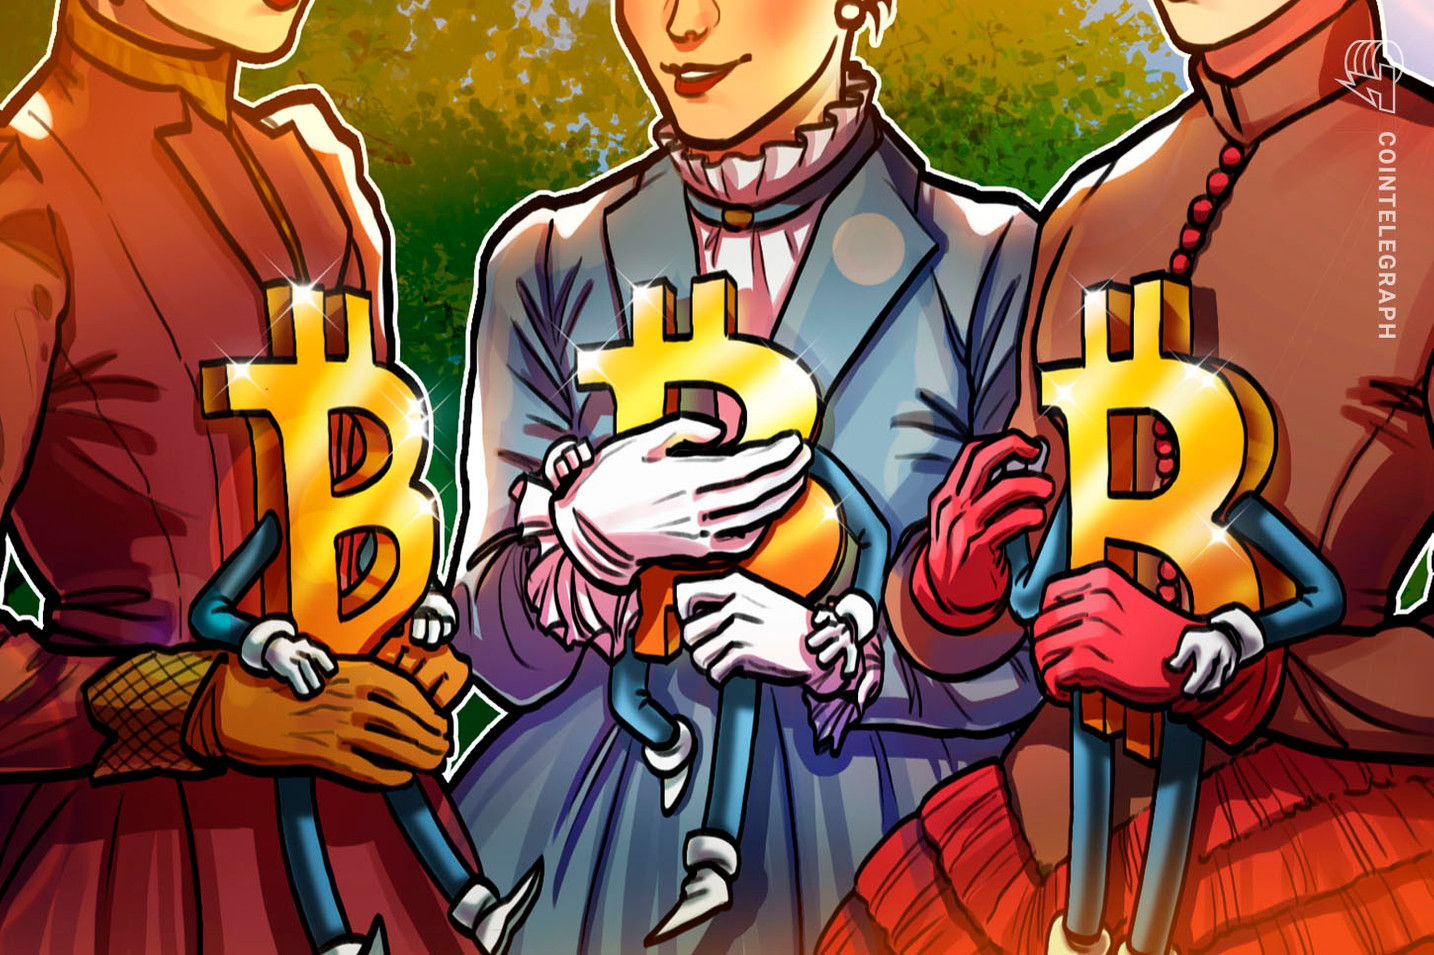 Bitcoin price is down, but here's 3 reasons why $1B liquidations are less frequent